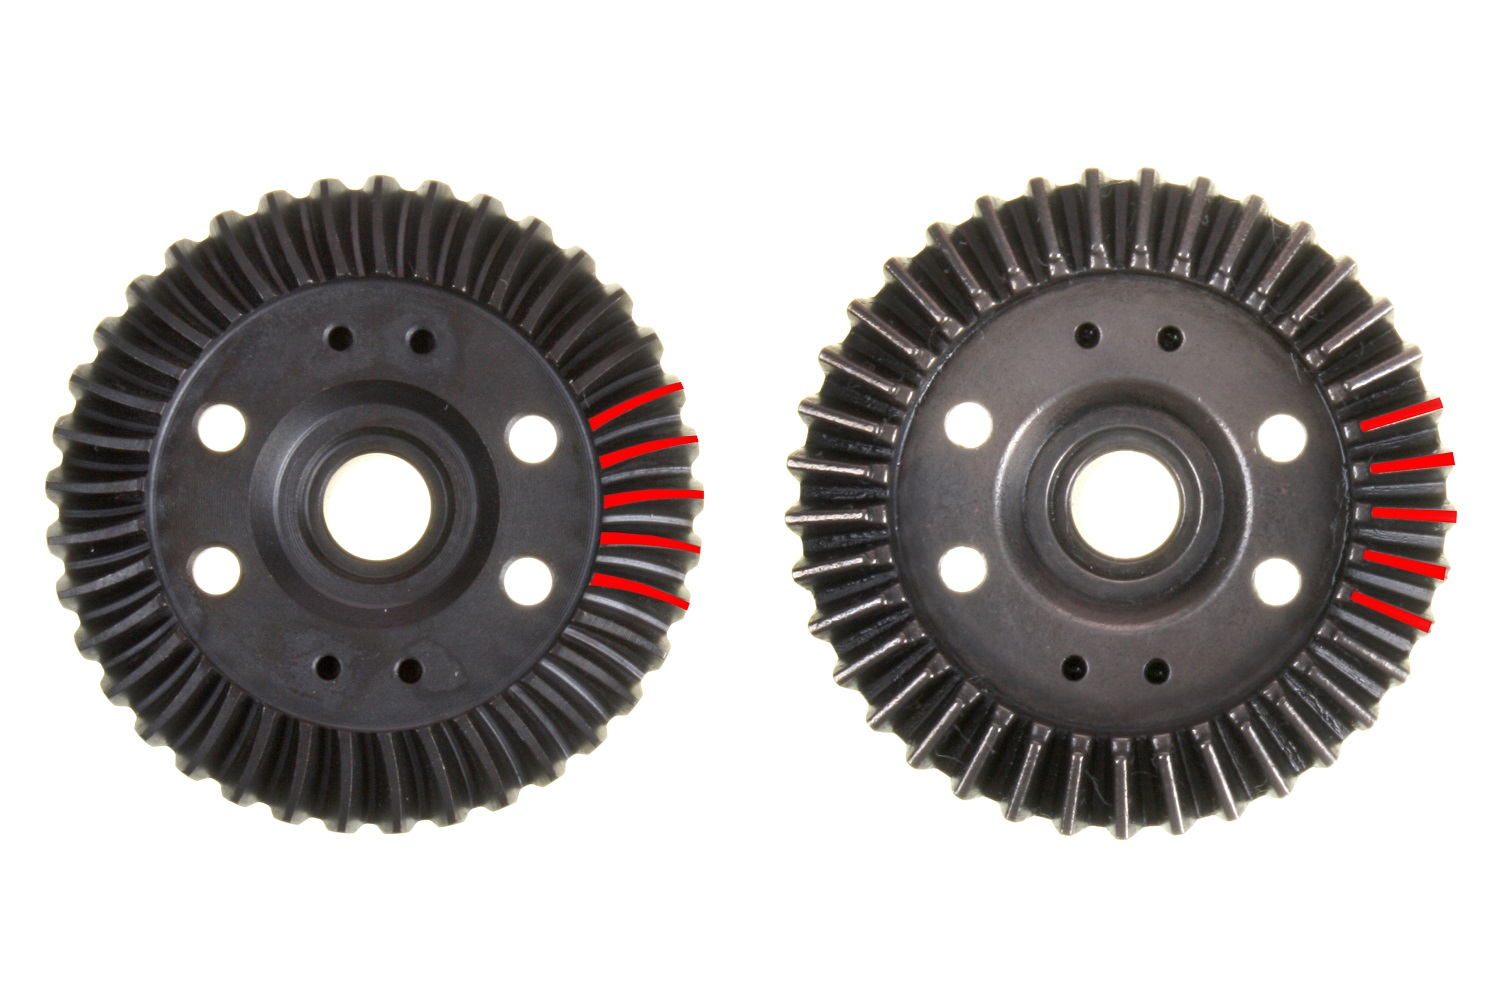 Spiral-cut gears provide a larger contact patch